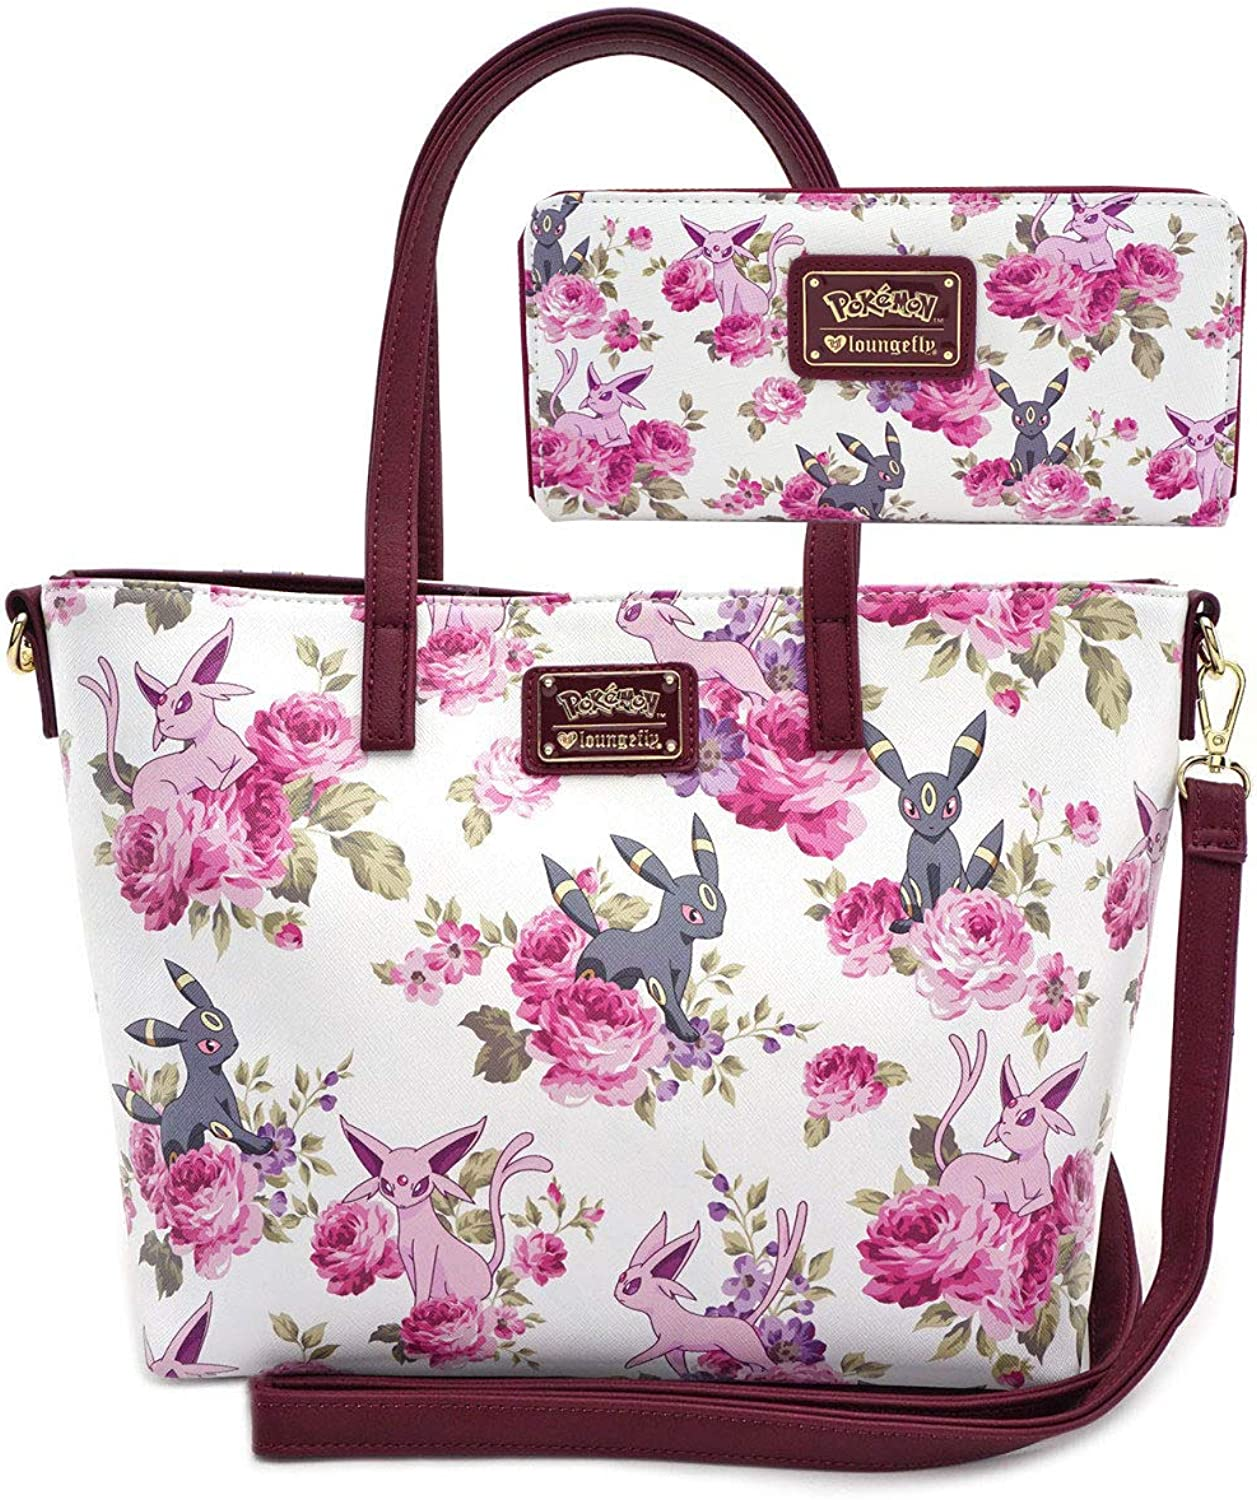 Loungefly Pokemon Espeon Umbreon Floral Print Tote Bag and Wallet Set